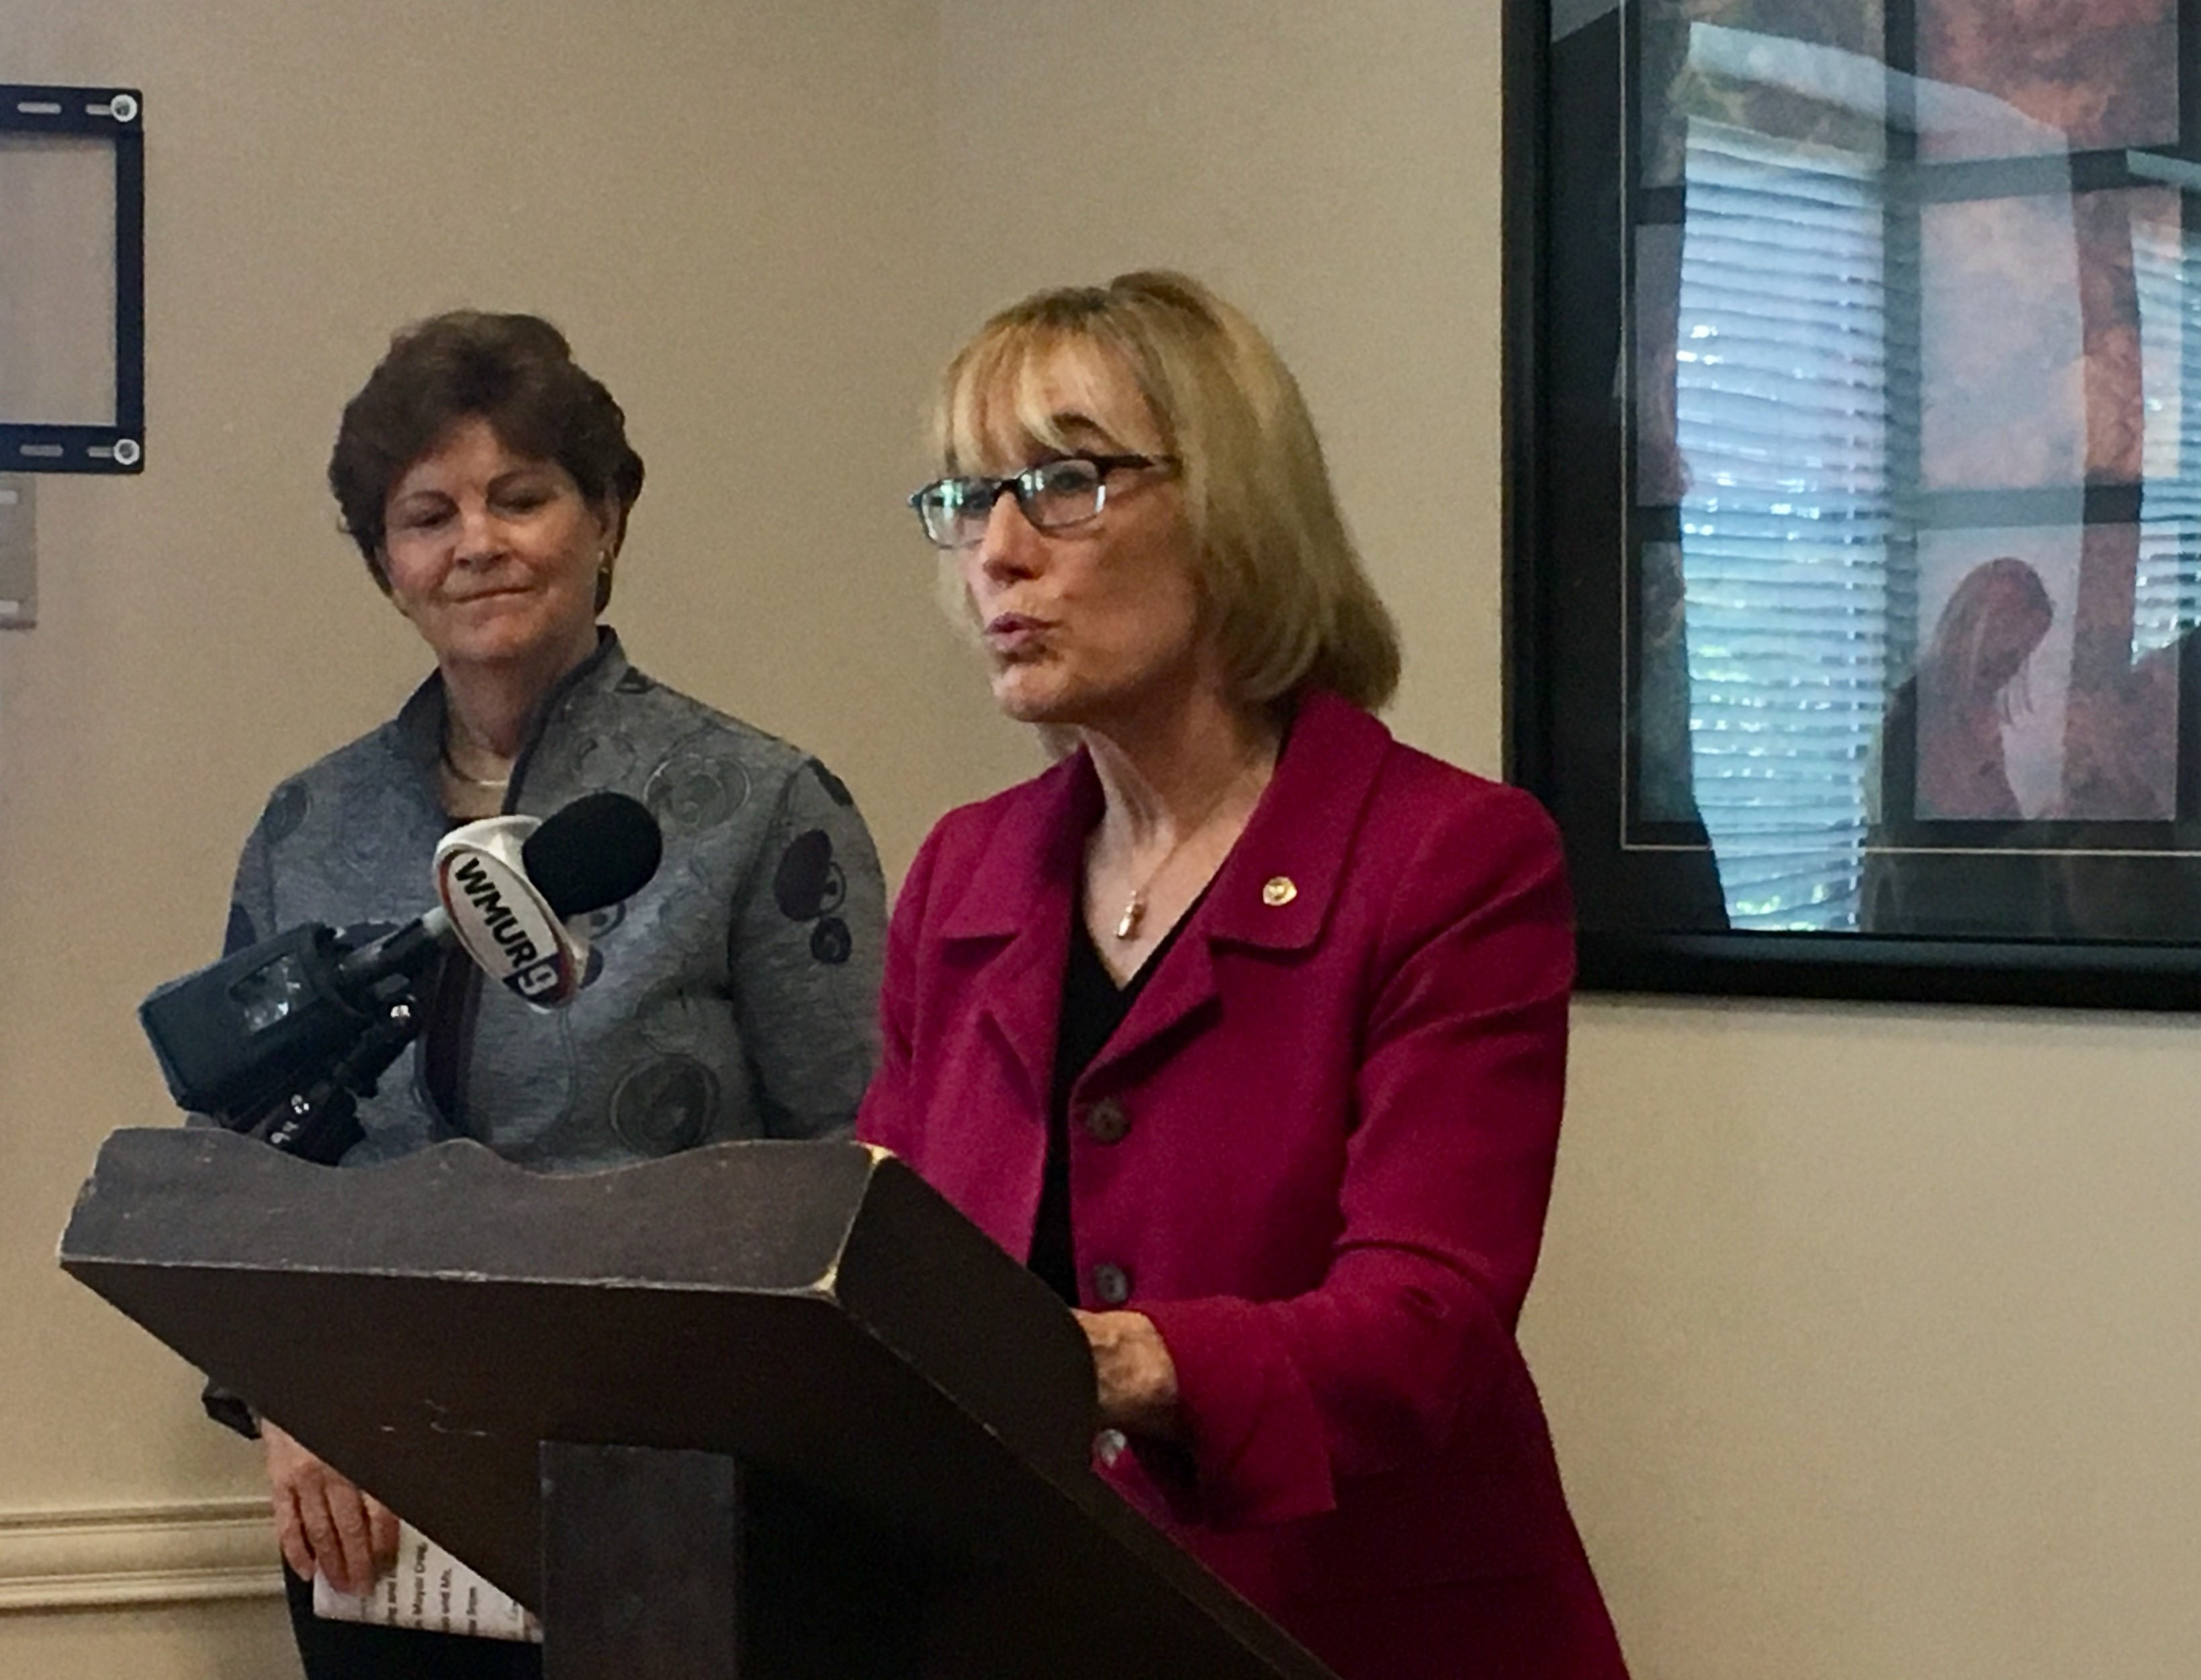 Hassan On Sweeping Opioid Legislation: 'This is Just the